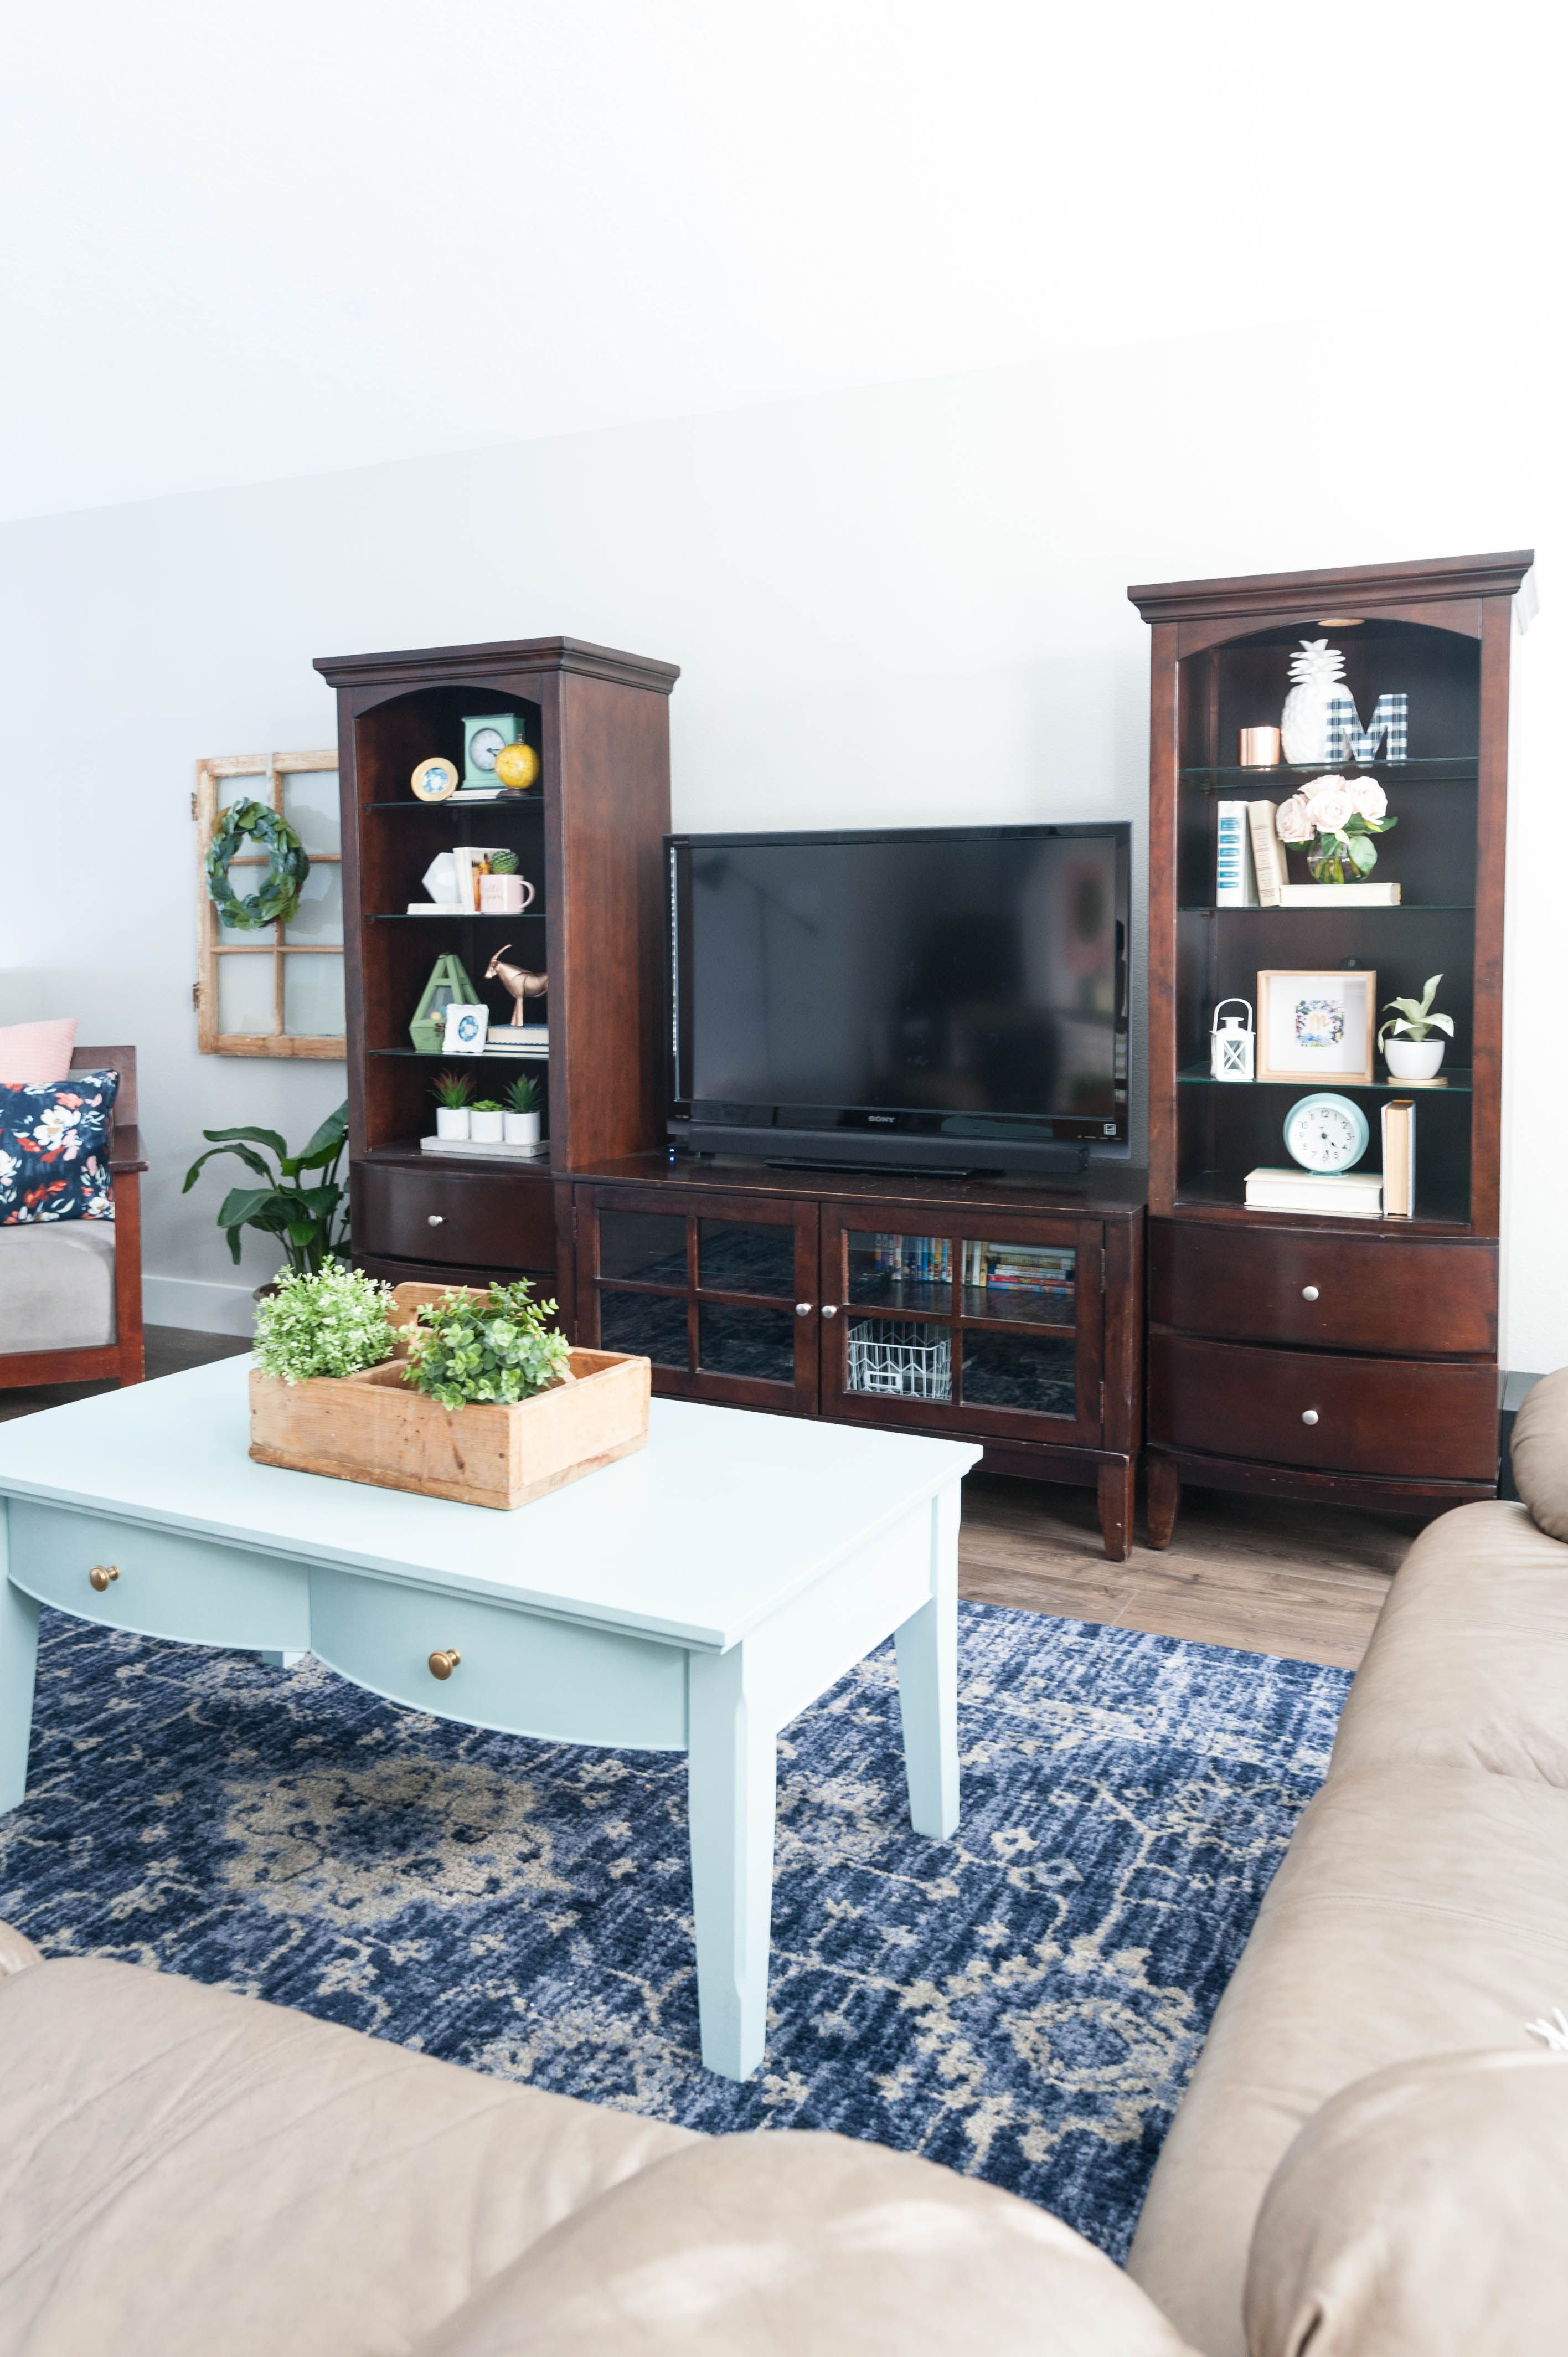 Best Pink Navy Blue And Jade Family Room Decor Reveal Jo's 400 x 300